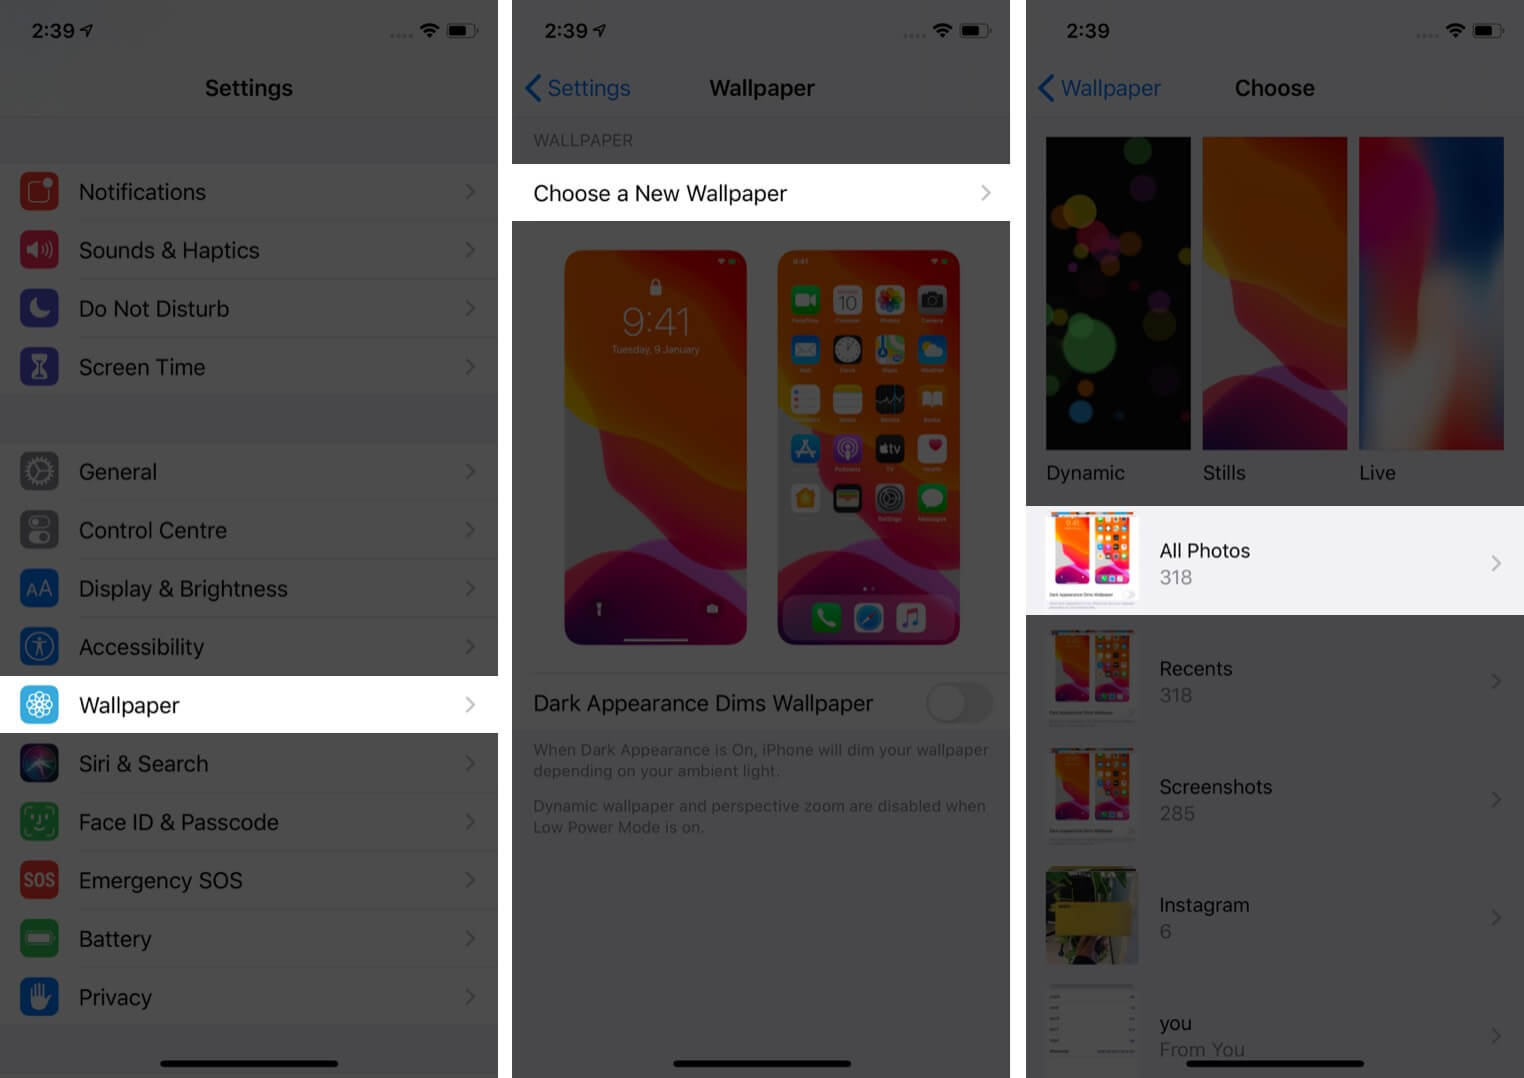 tap on wallpaper and tap on choose a new wallpaper then tap on all photos in iphone settings